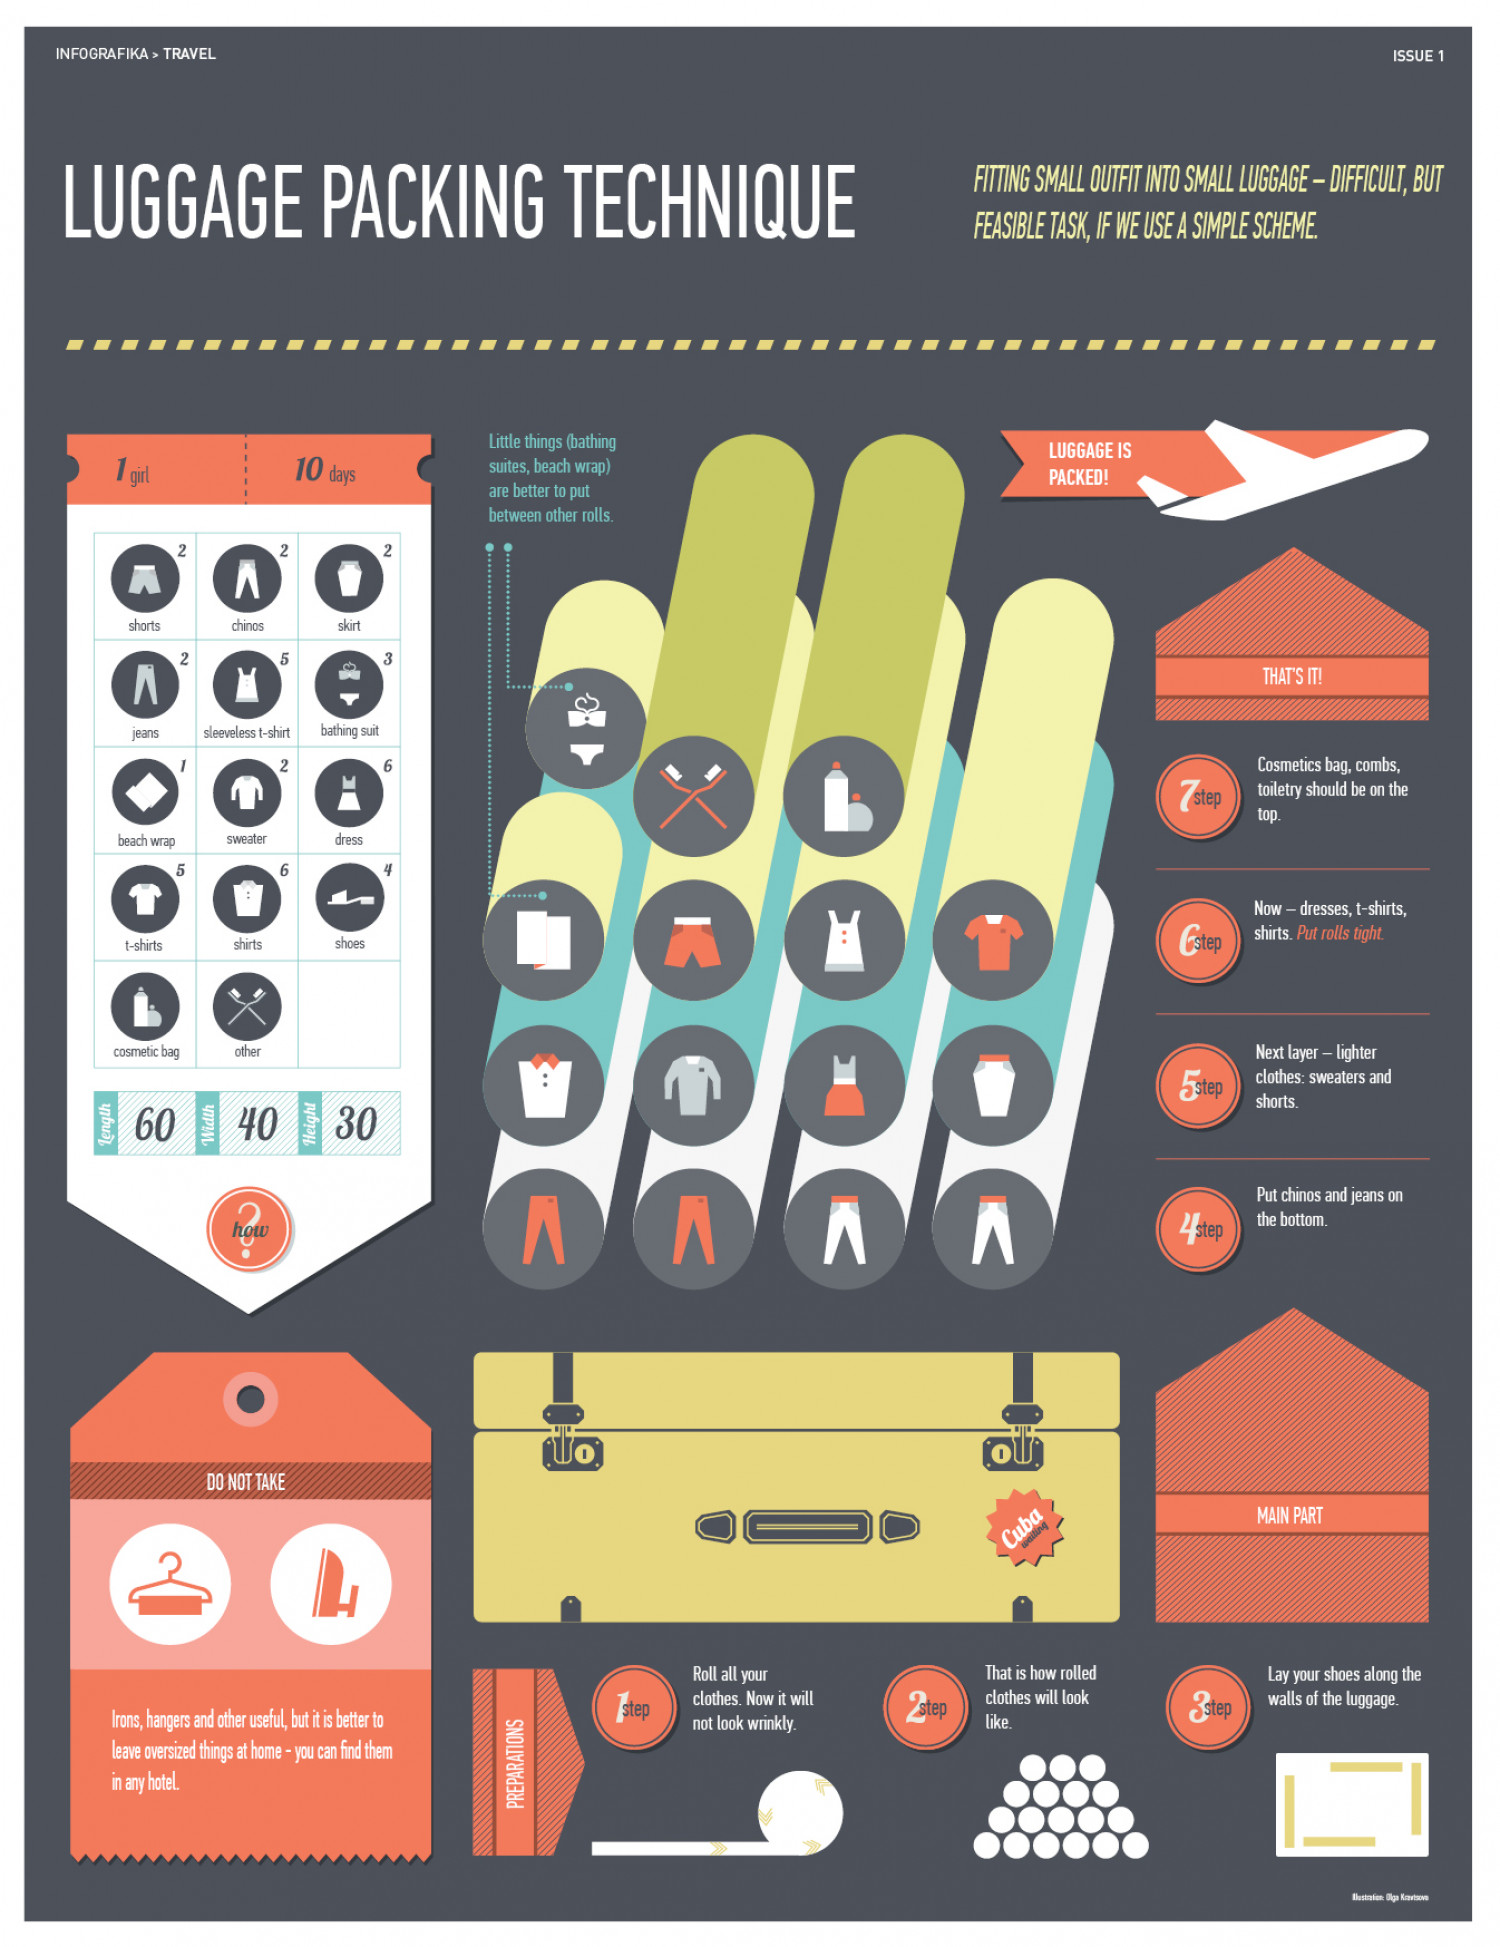 Luggage packing technique Infographic